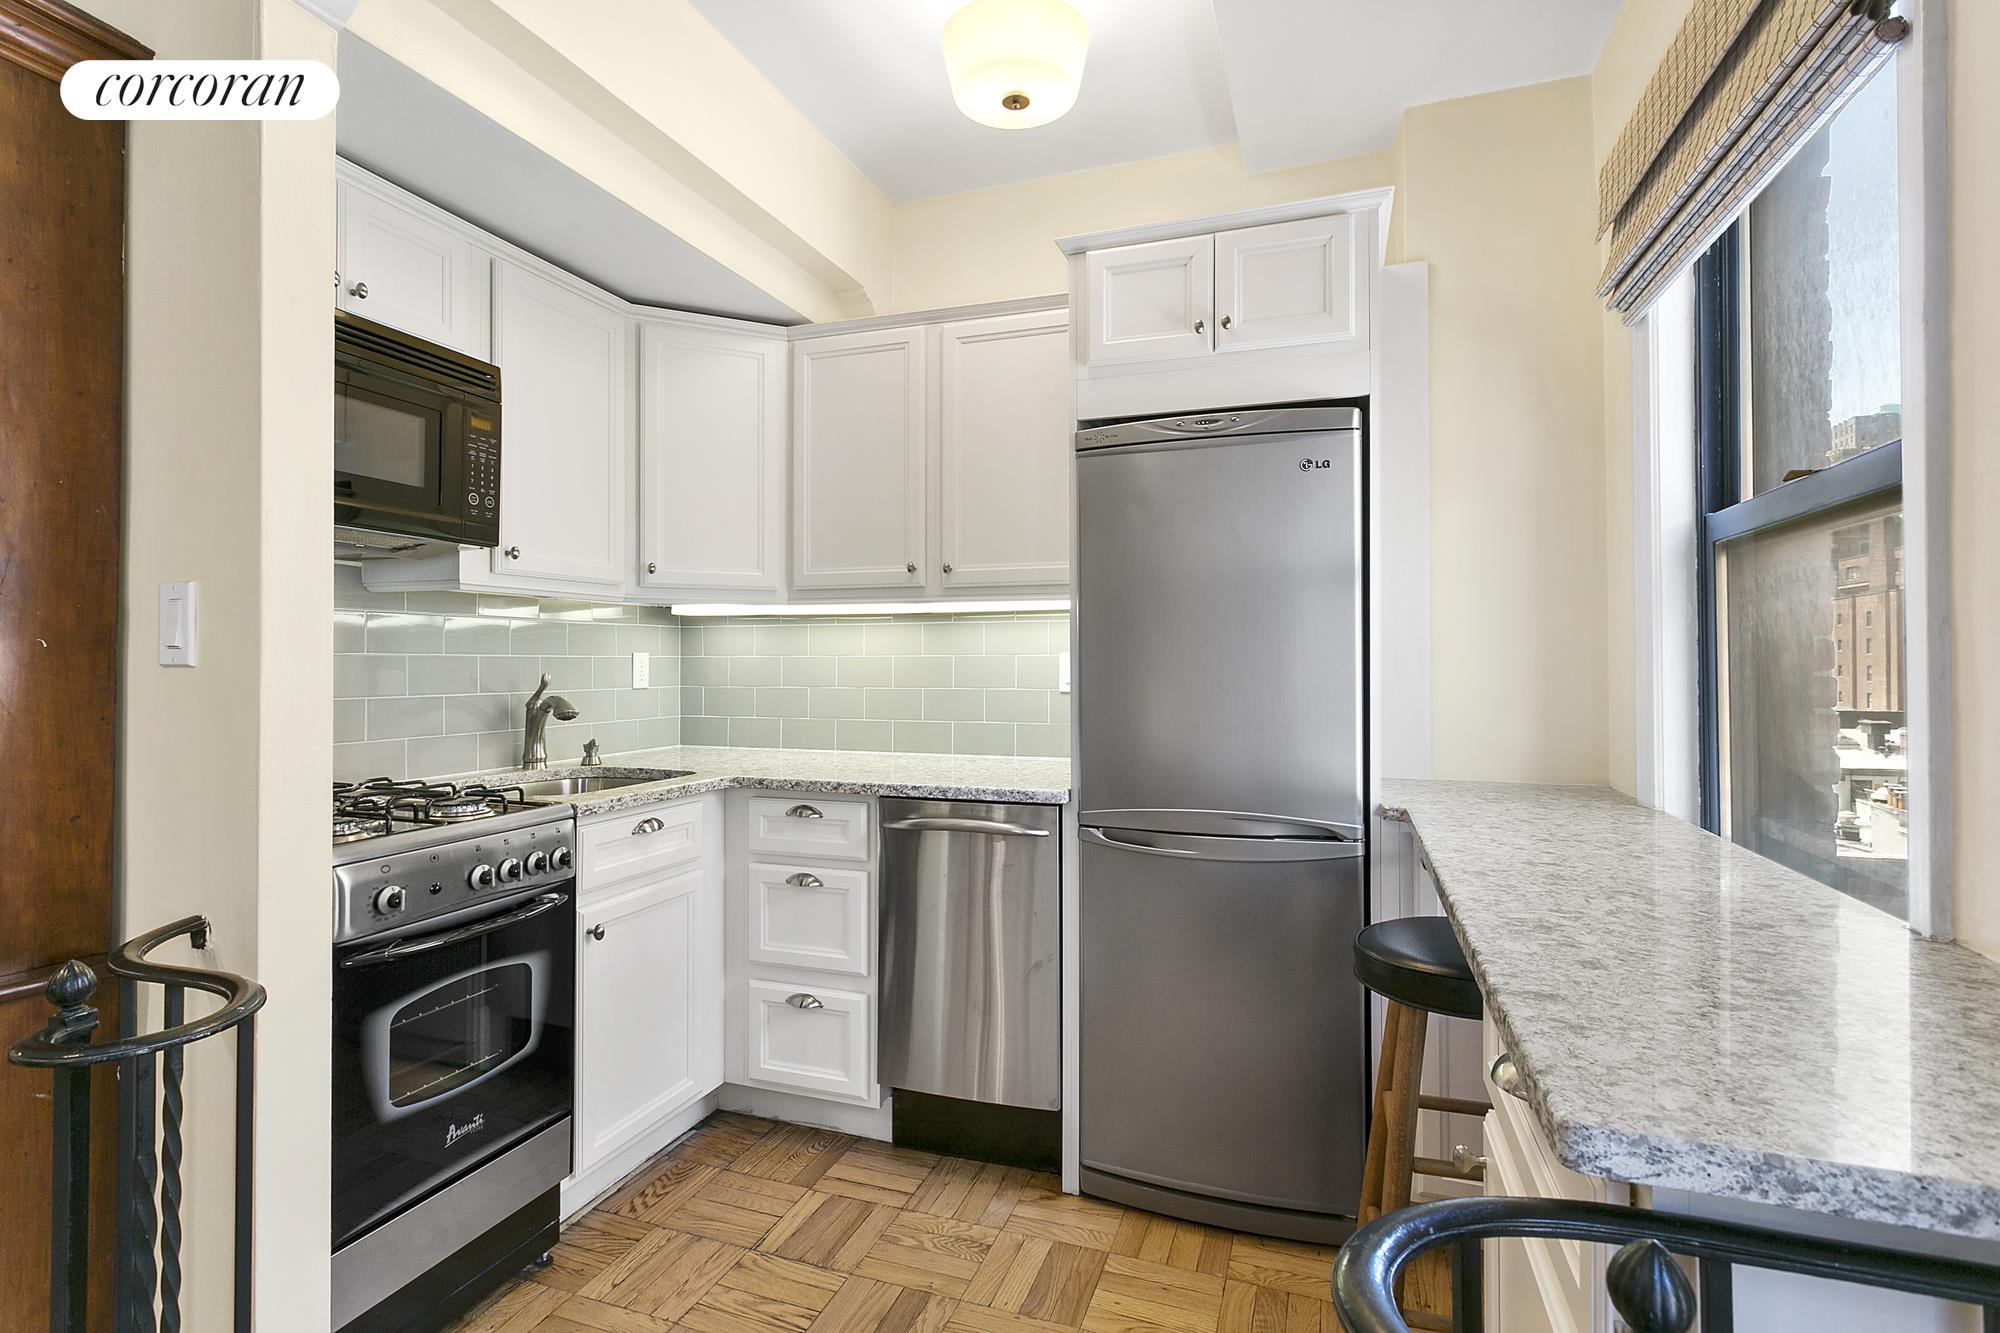 Corcoran 123 East 37th Street Apt 9a Murray Hill Real